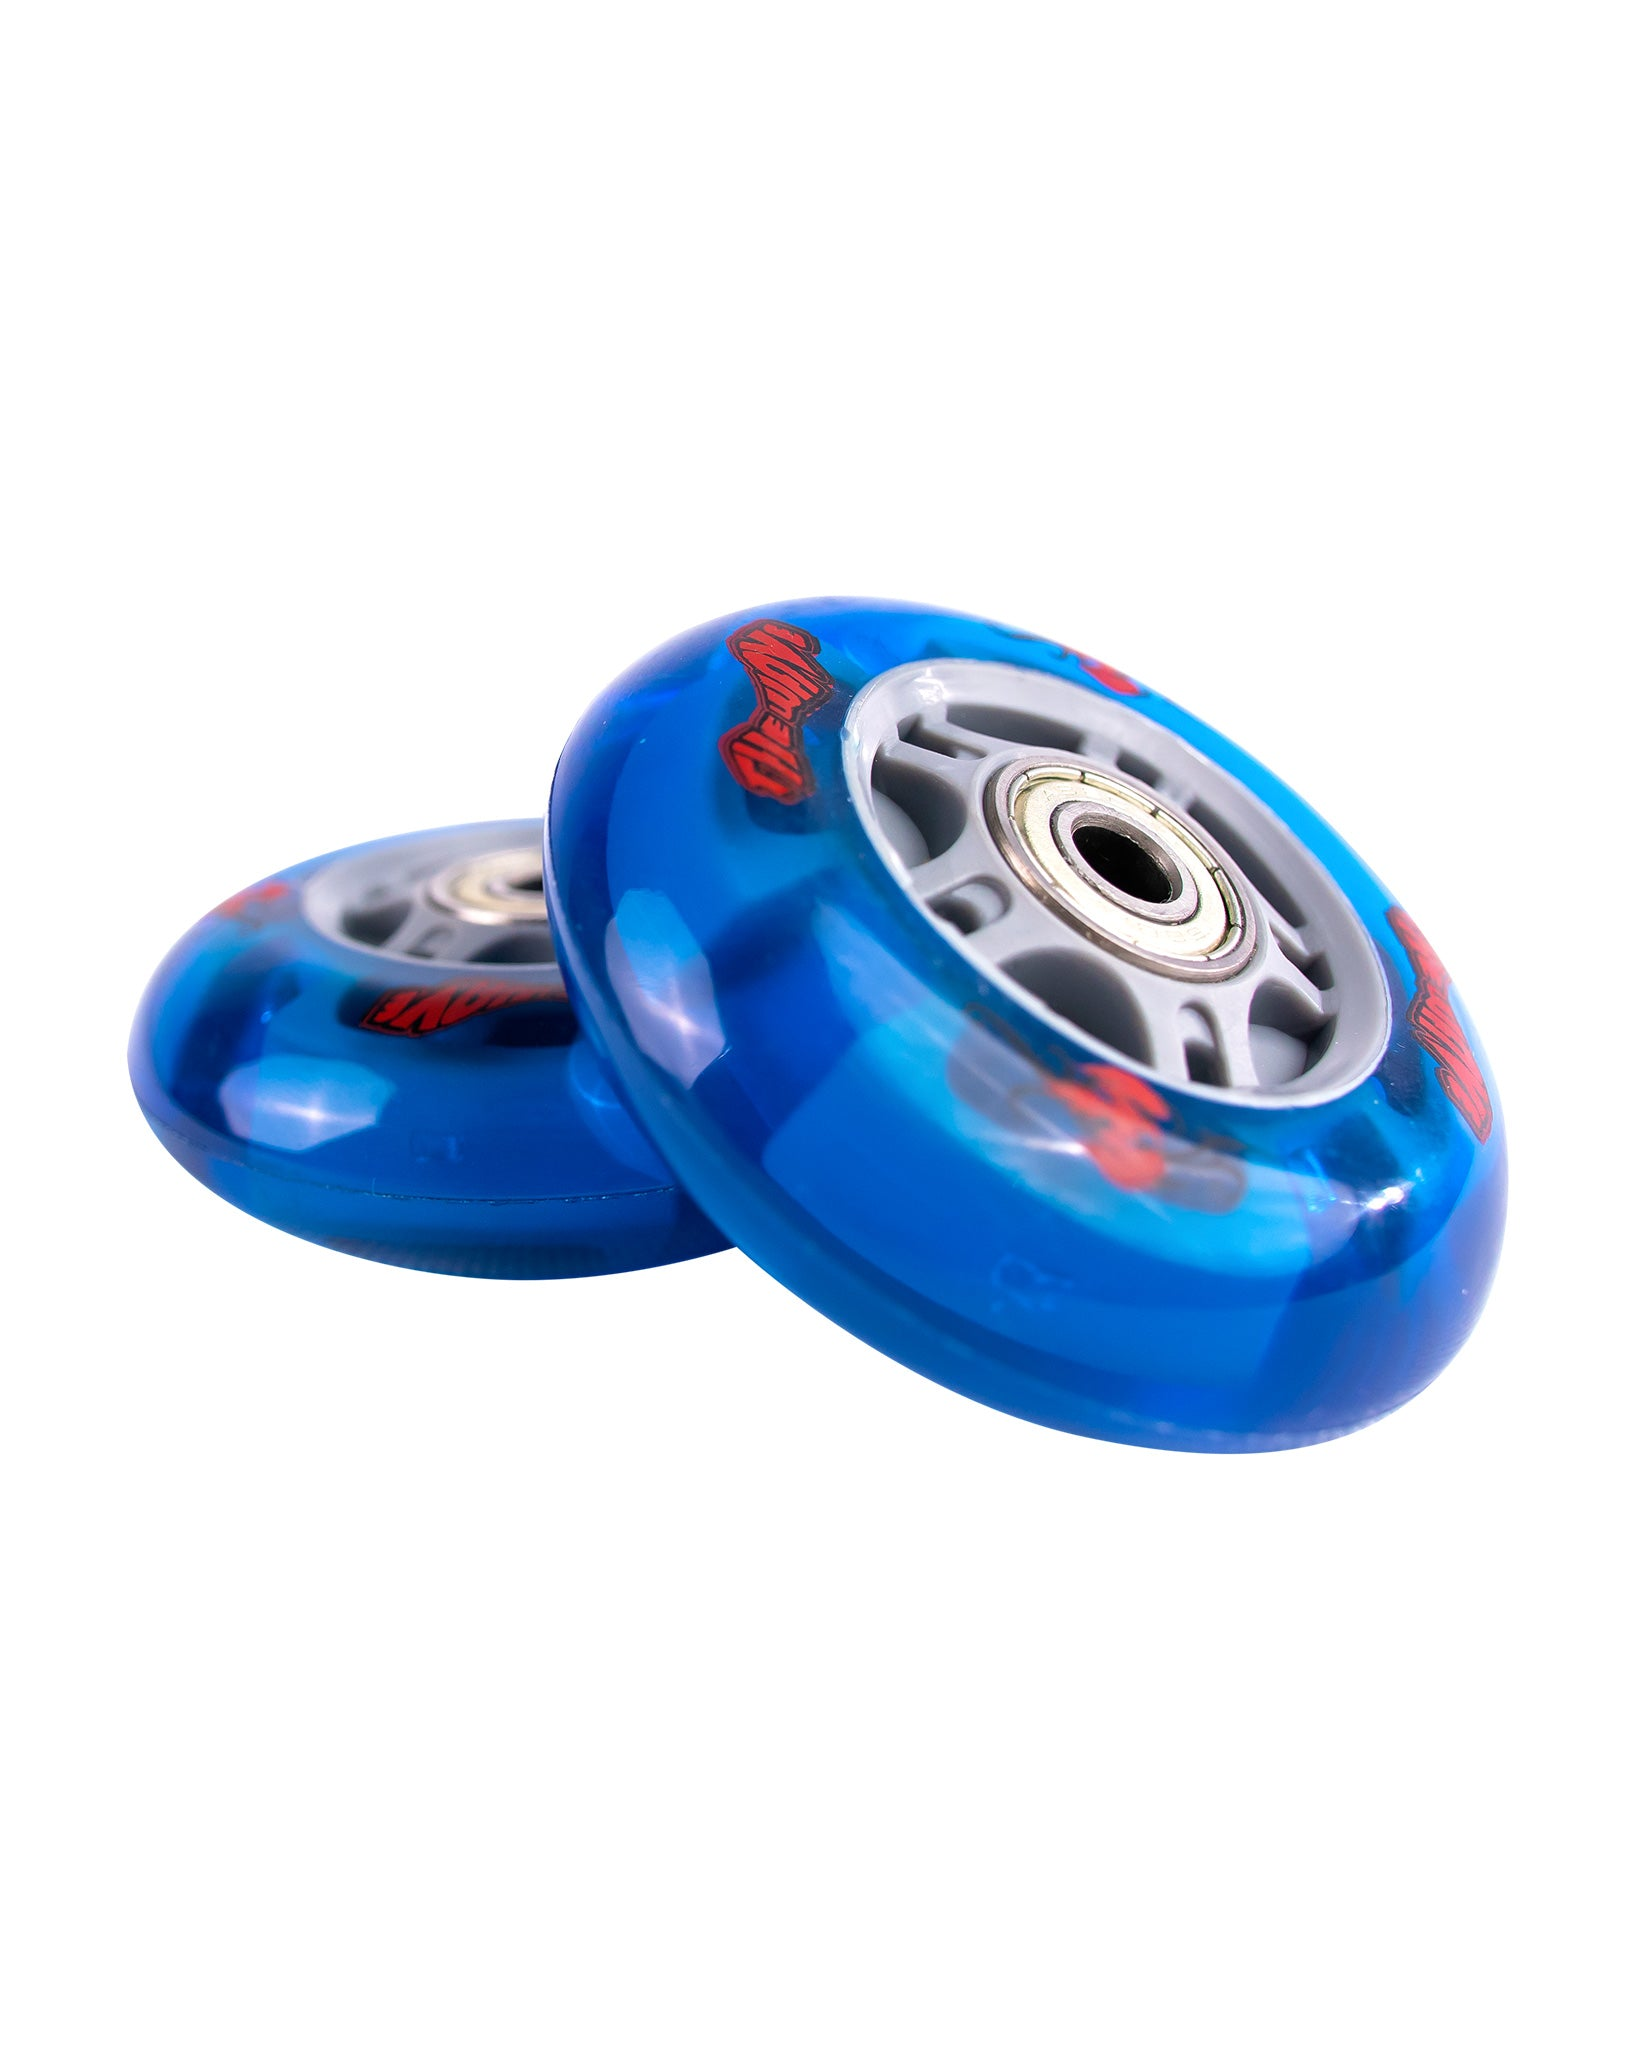 Retro Blue | Wave Board Lightup Wheels